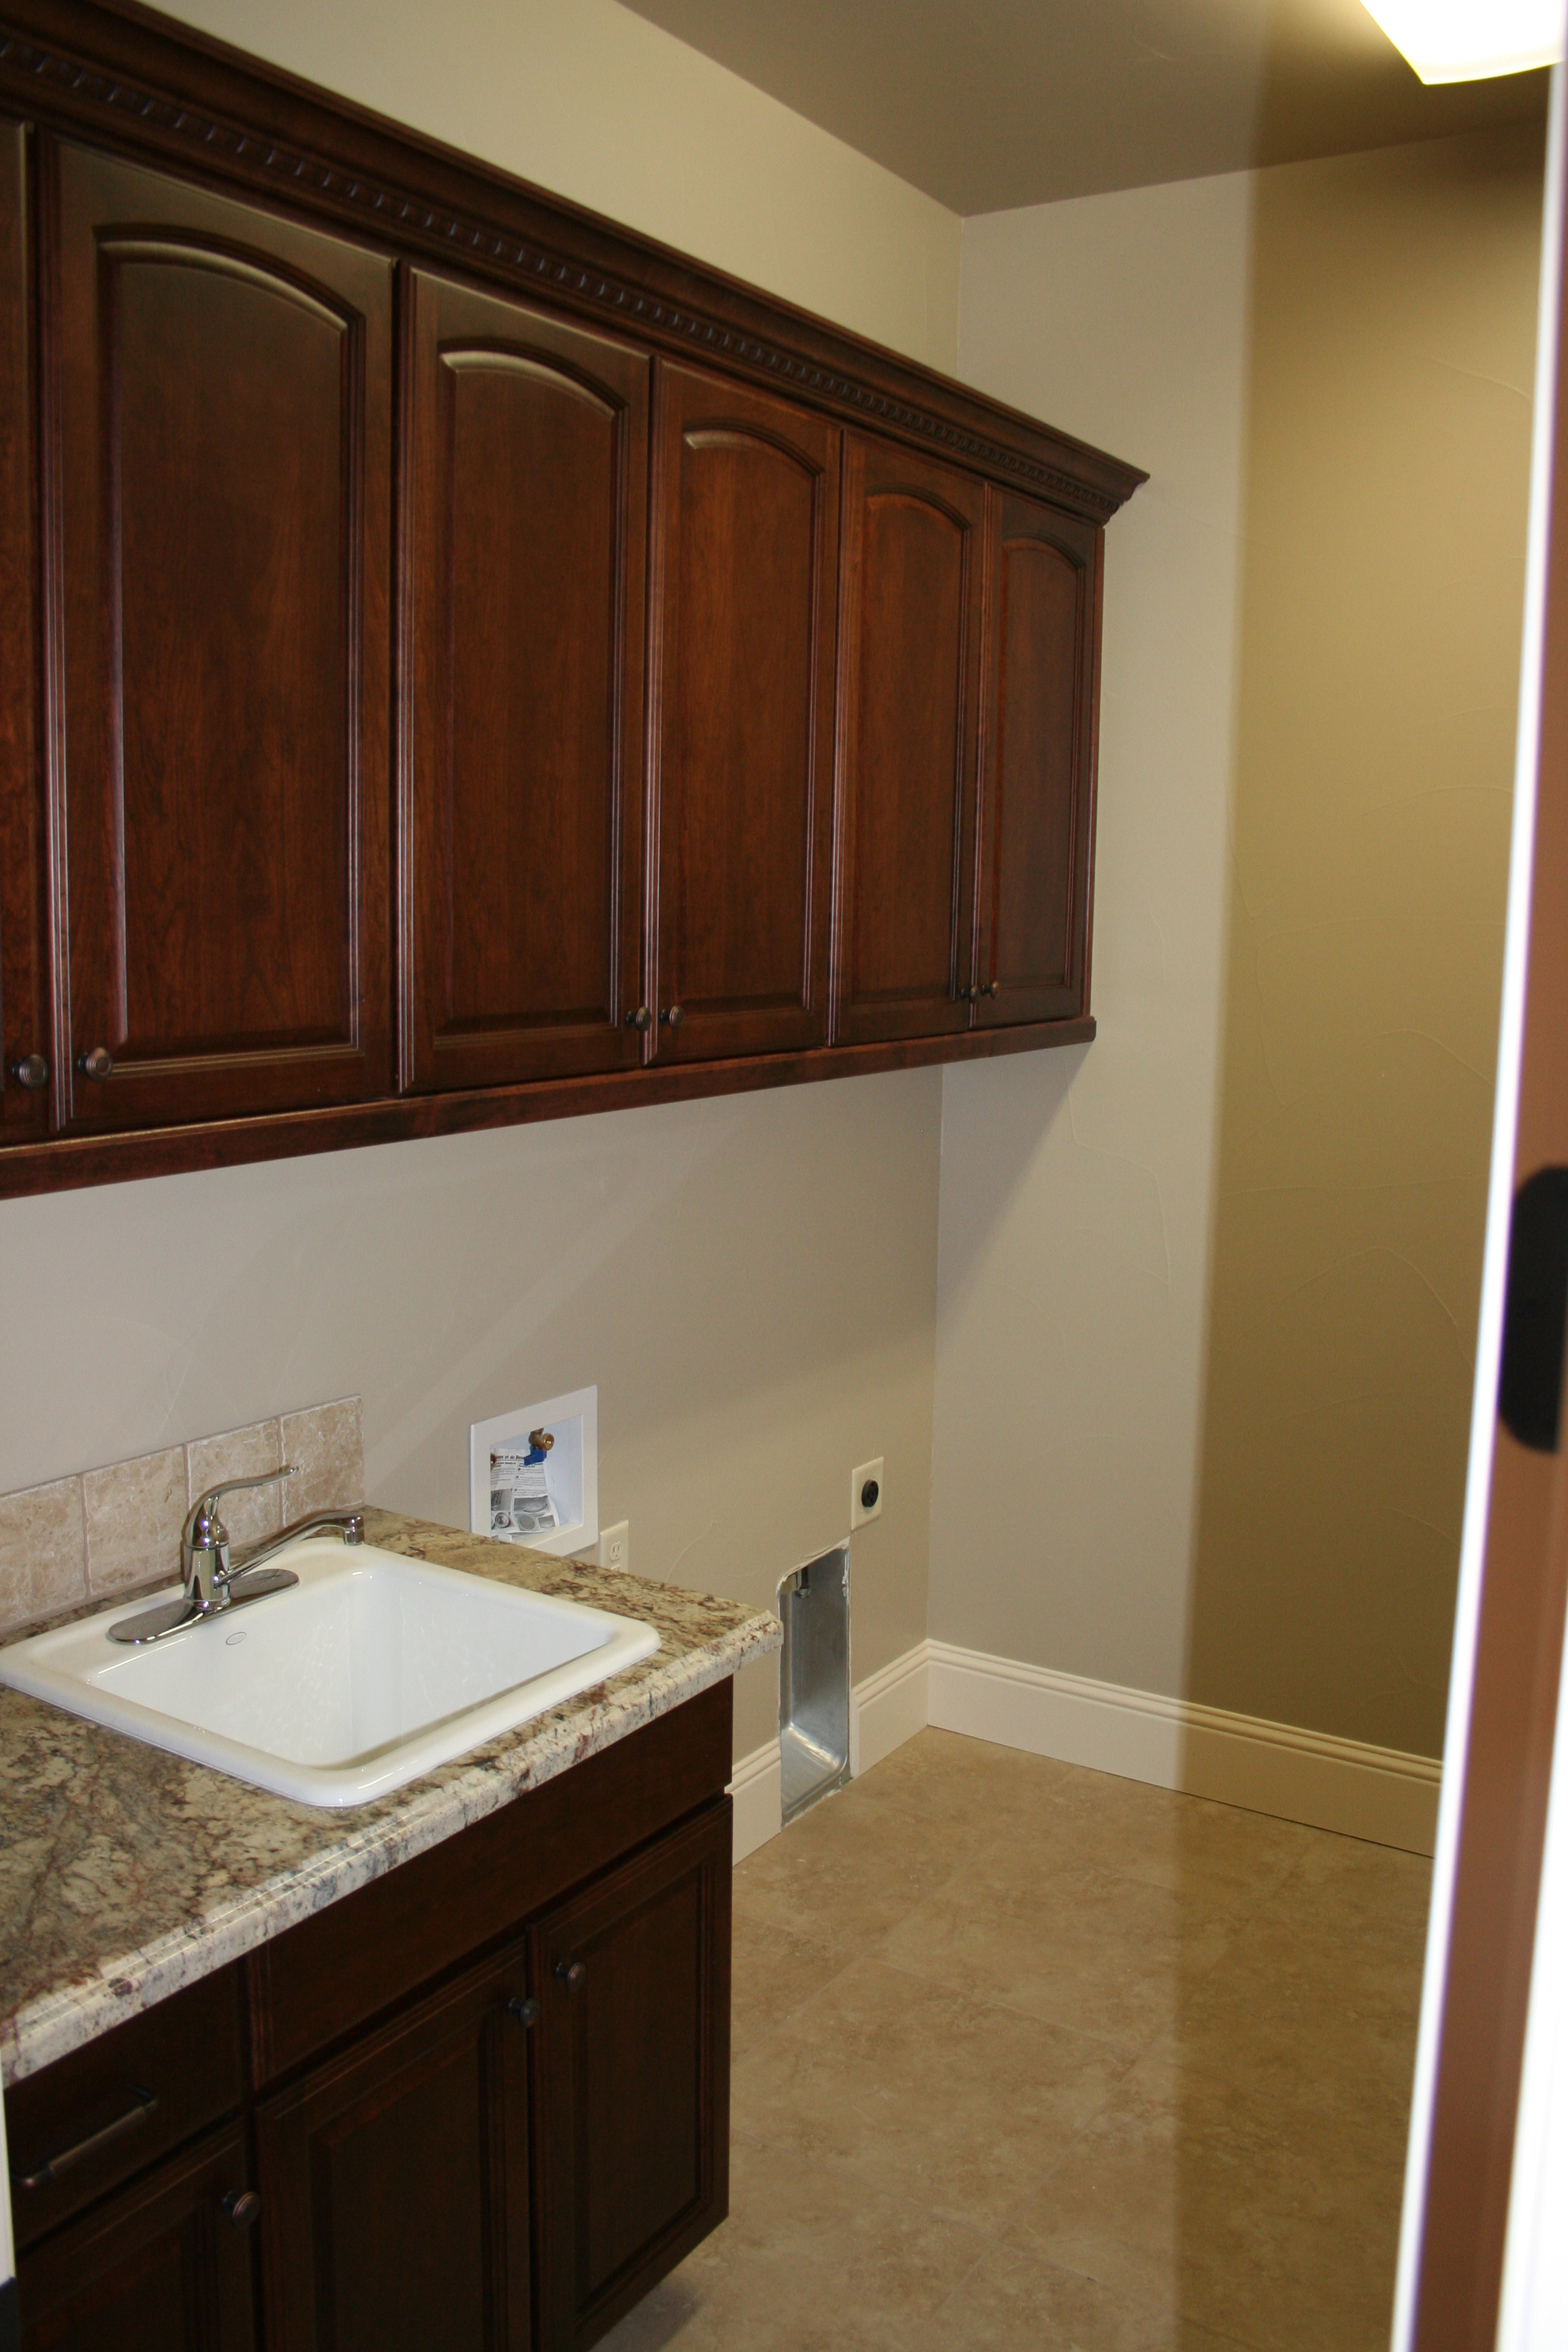 laundry room, sink, cabinets.JPG